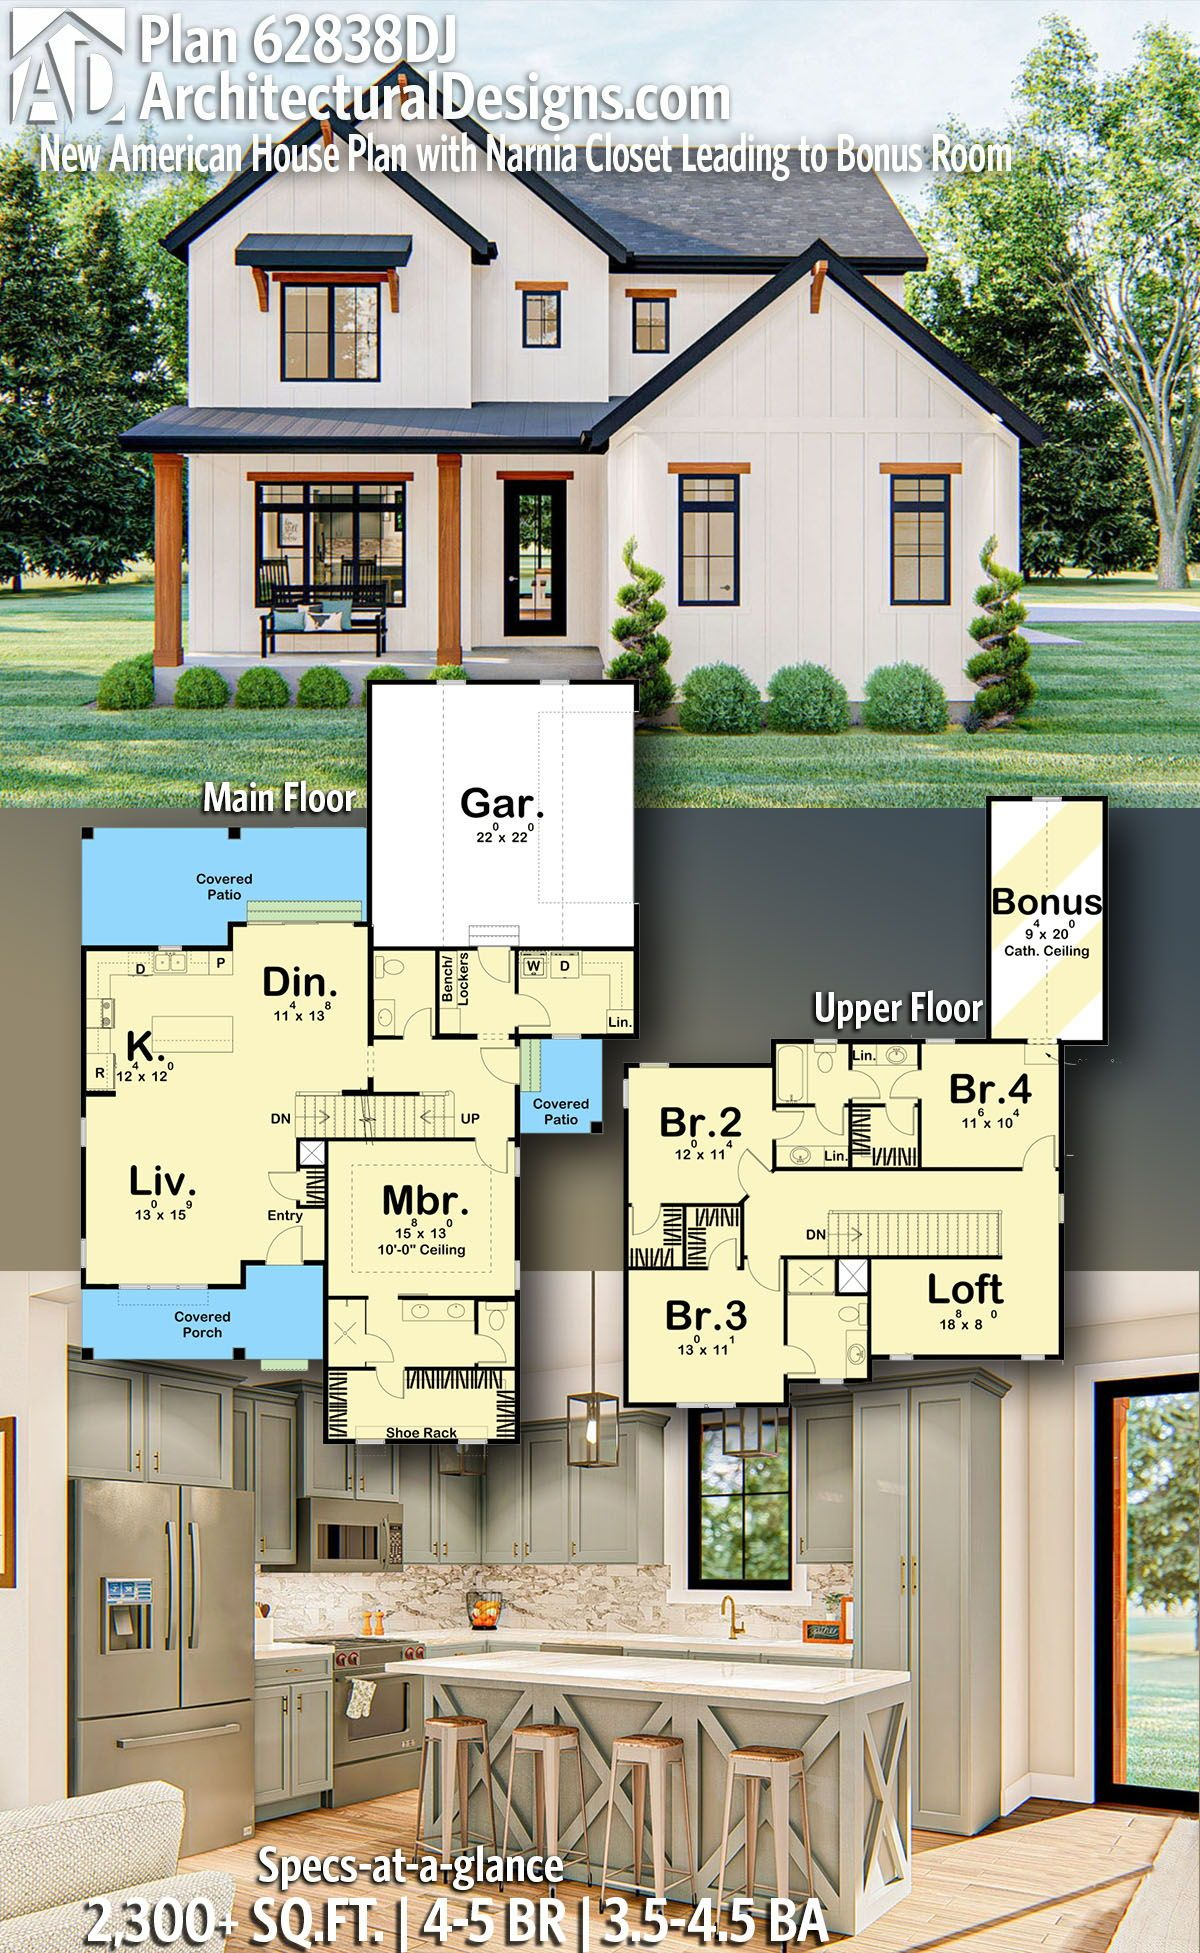 New American Farmhouse House Plan 62838DJ gives you 2,300 square feet of living space with 4-5 bedrooms and 3.5-4.5 baths. AD House Plan #62838DJ #adhouseplans #architecturaldesigns #houseplans #homeplans #floorplans #homeplan #floorplan #floorplans #houseplan